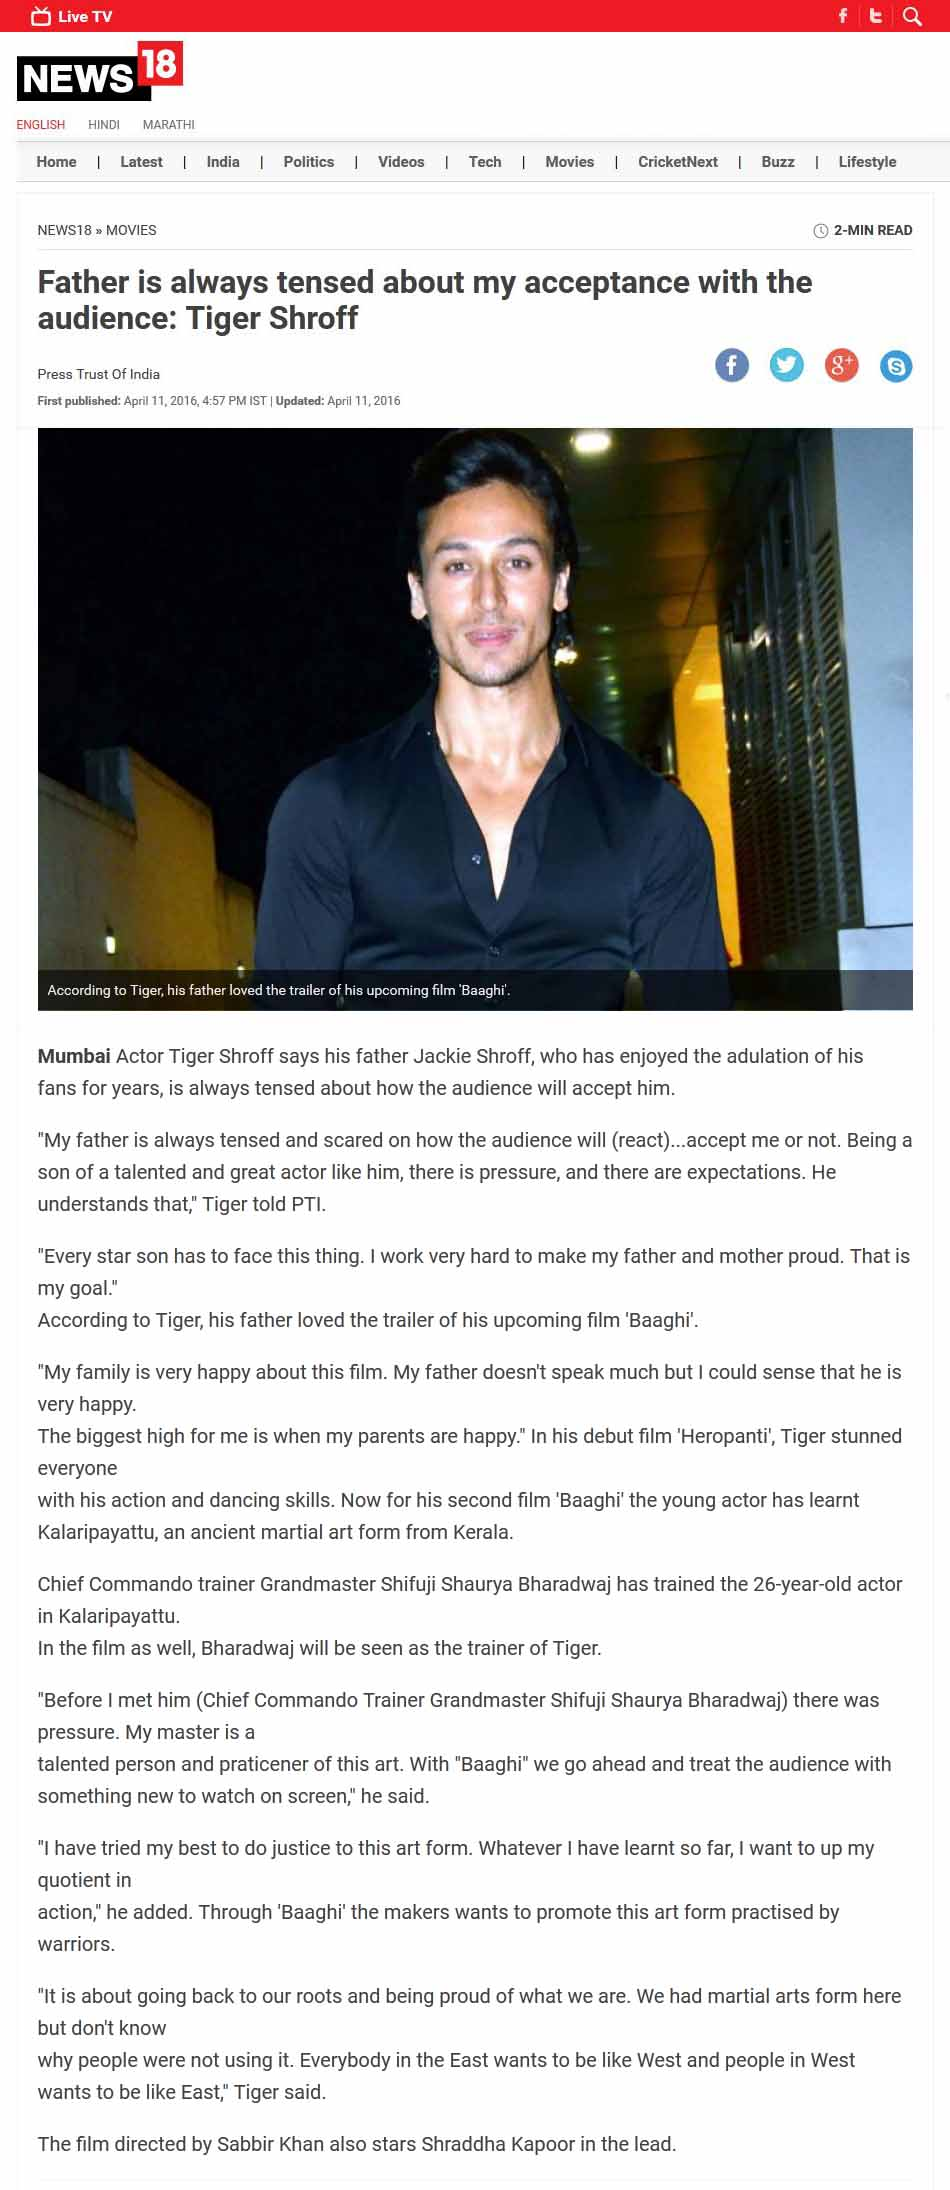 Father is always tensed about my acceptance with the audience: Tiger Shroff